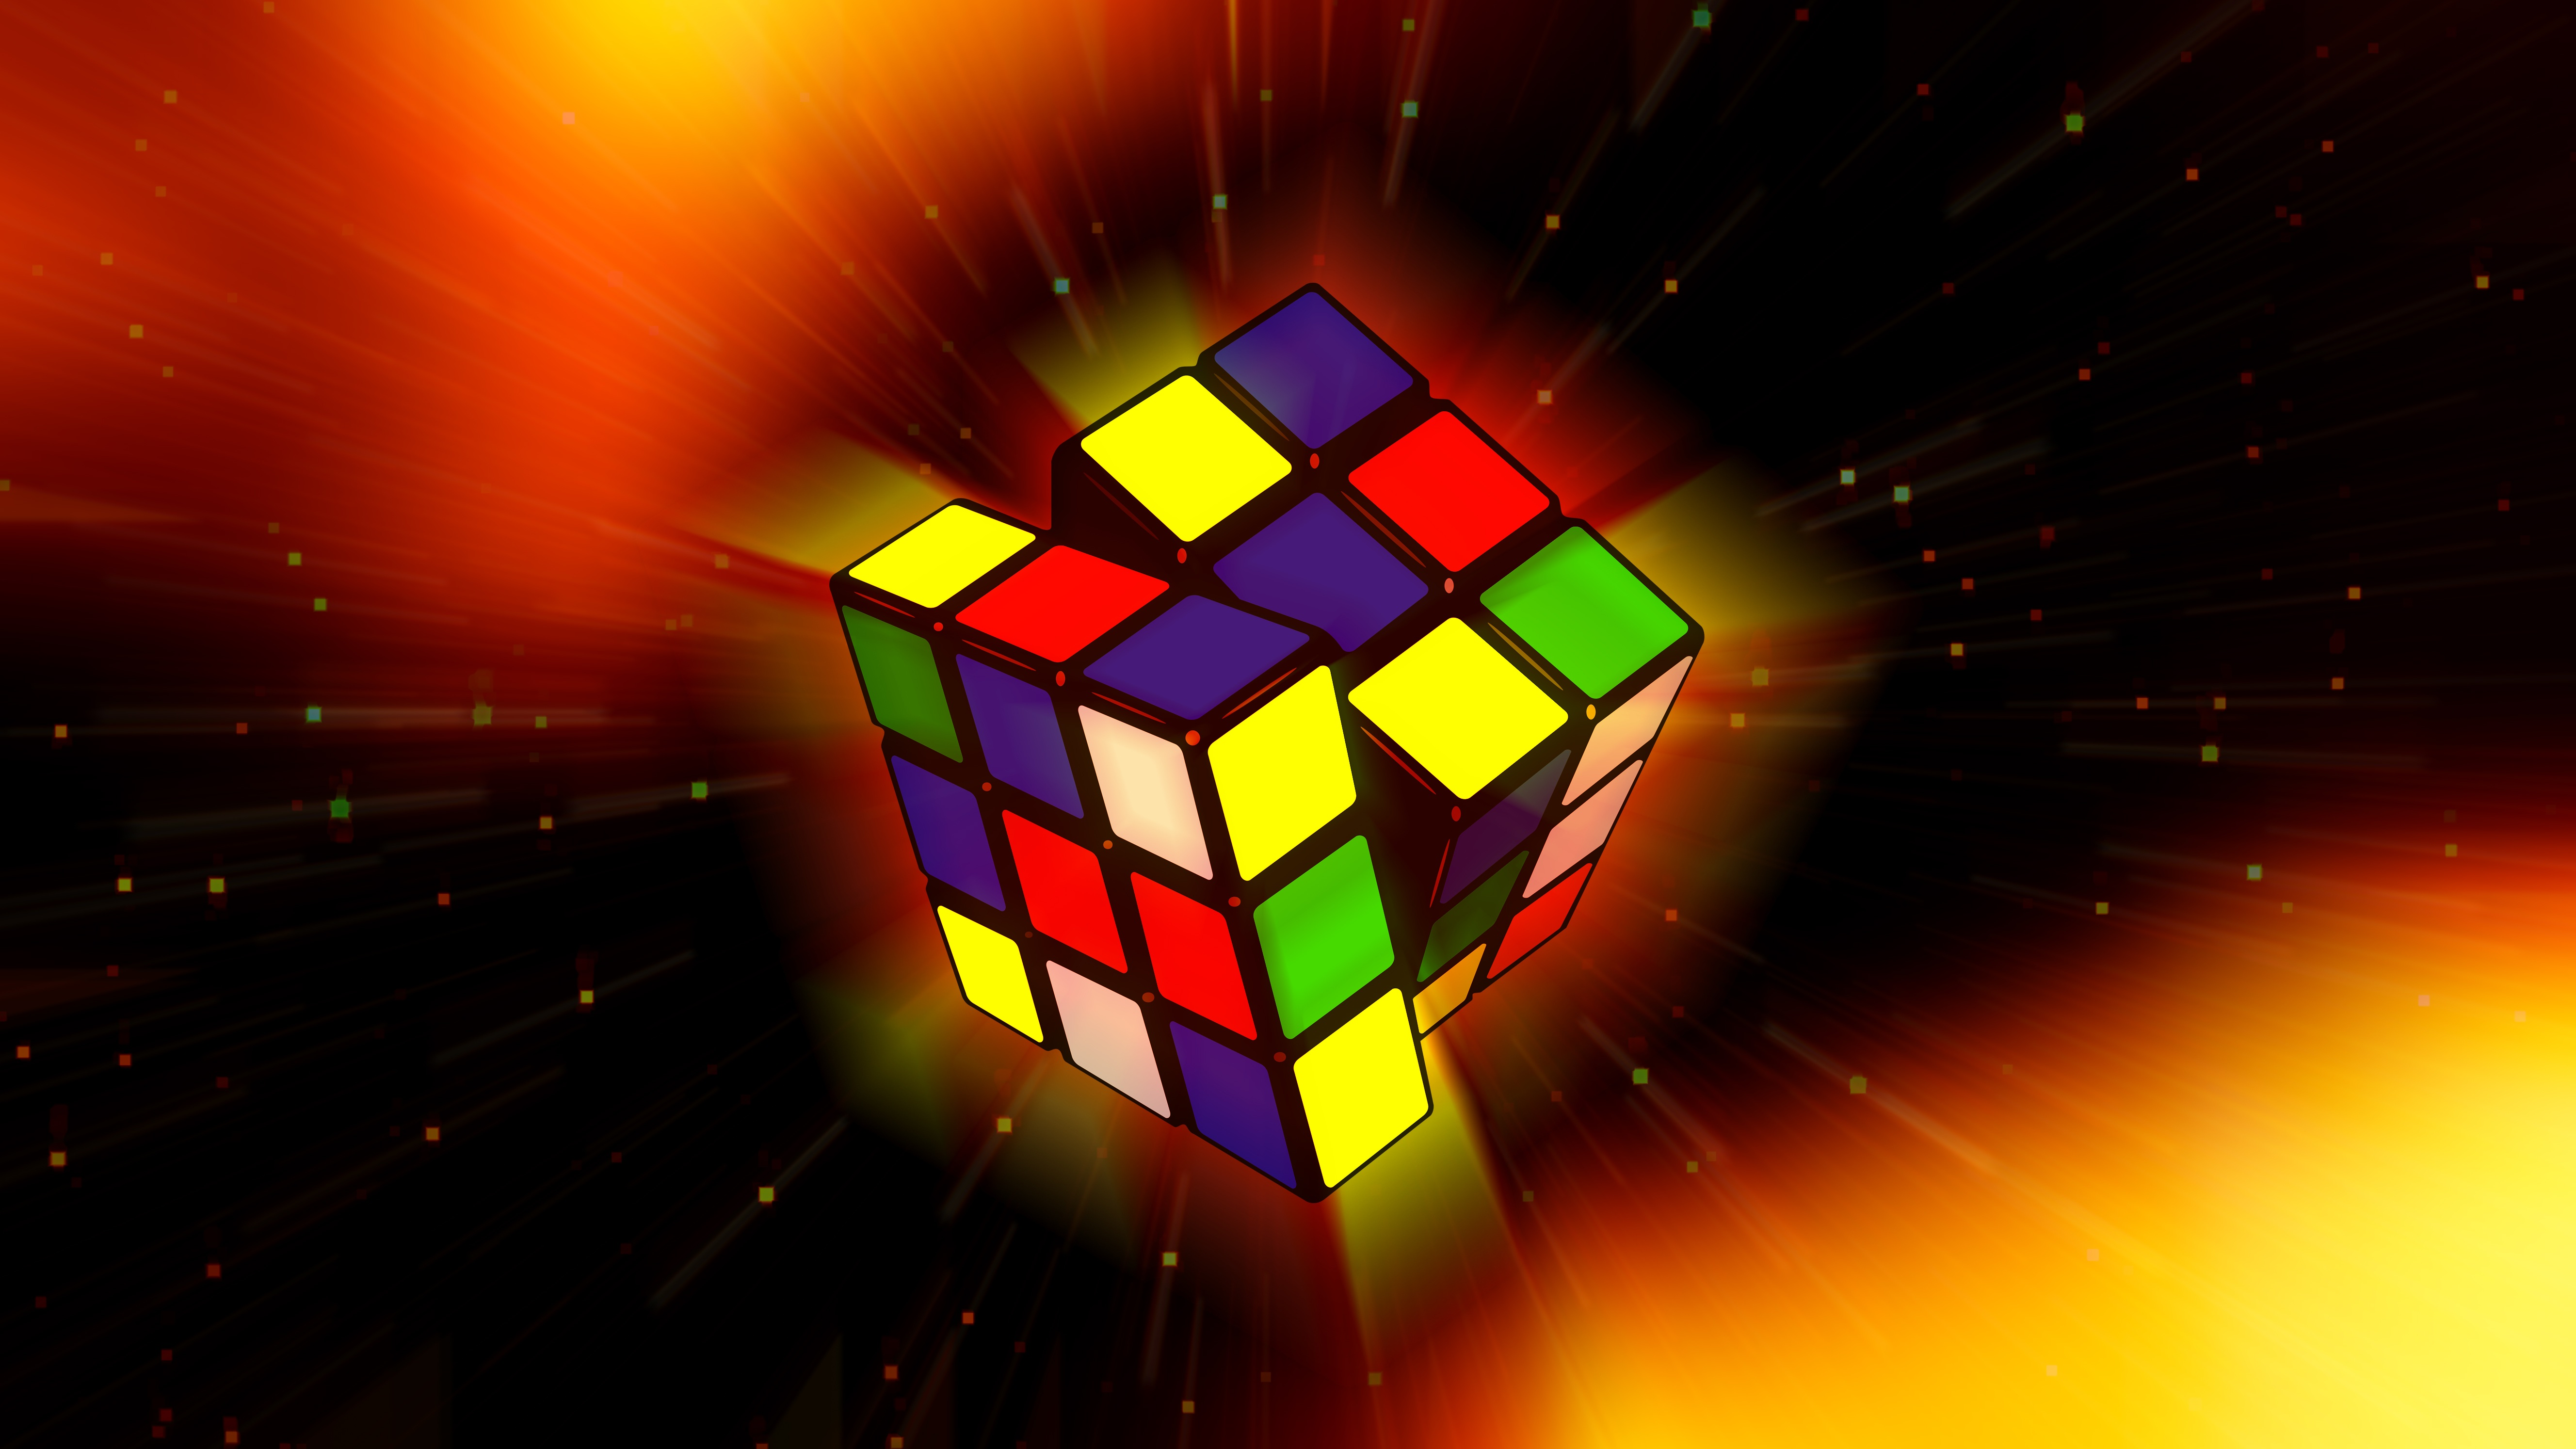 11 rubik's cube hd wallpapers | background images - wallpaper abyss